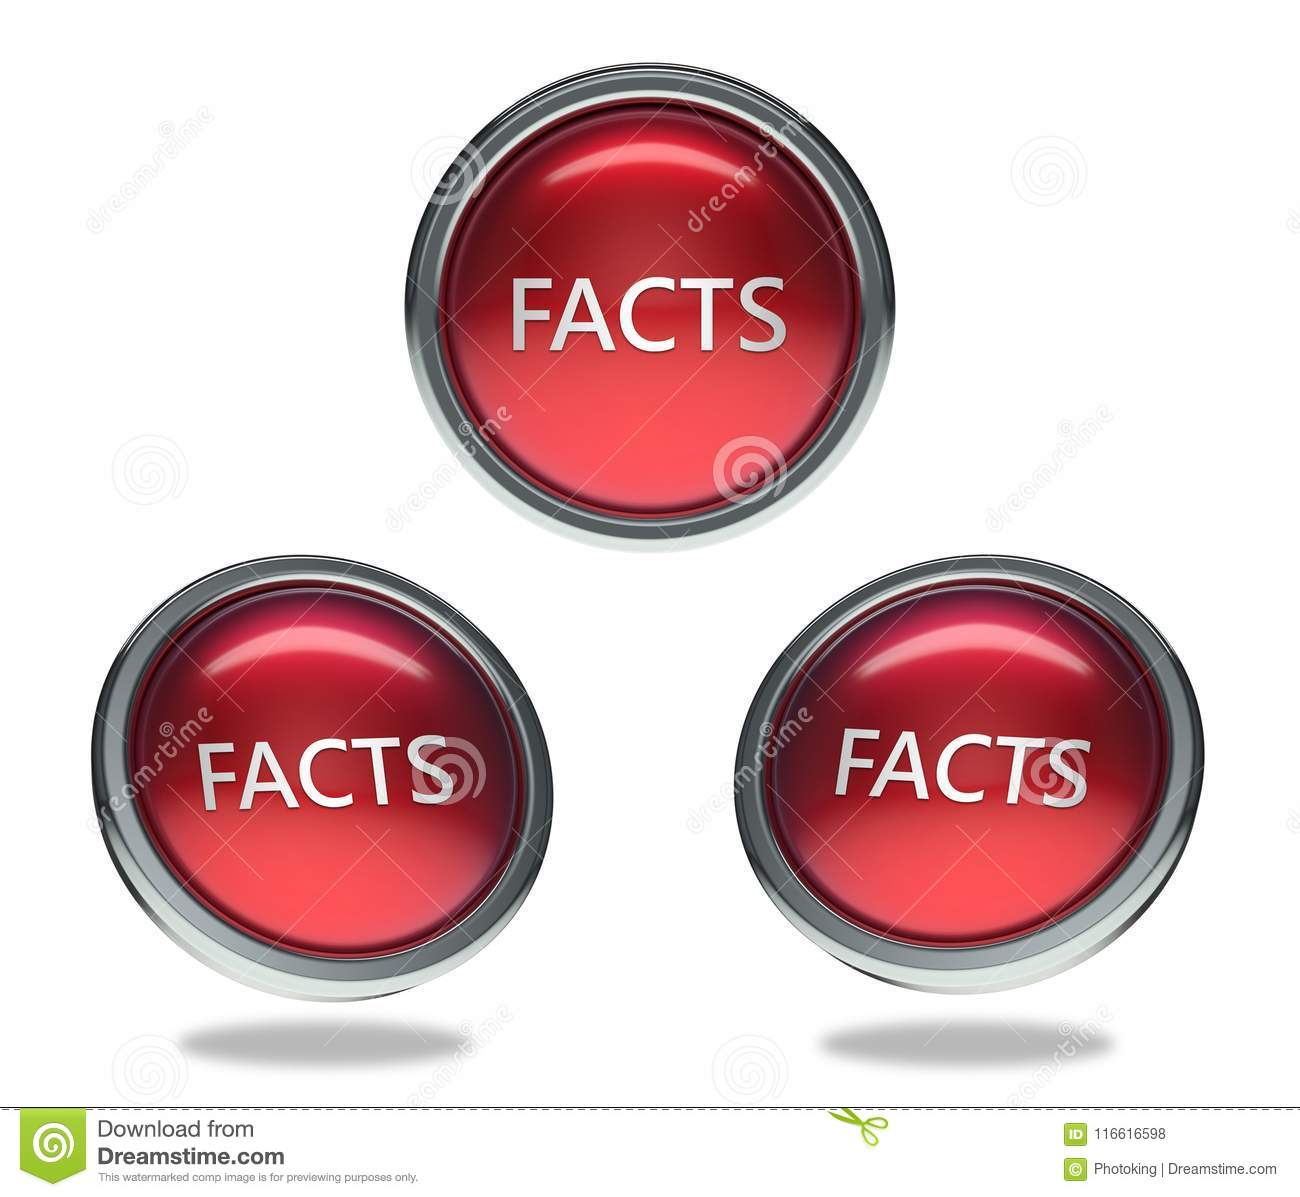 Facts glass button stock illustration. Illustration of frame3d ...